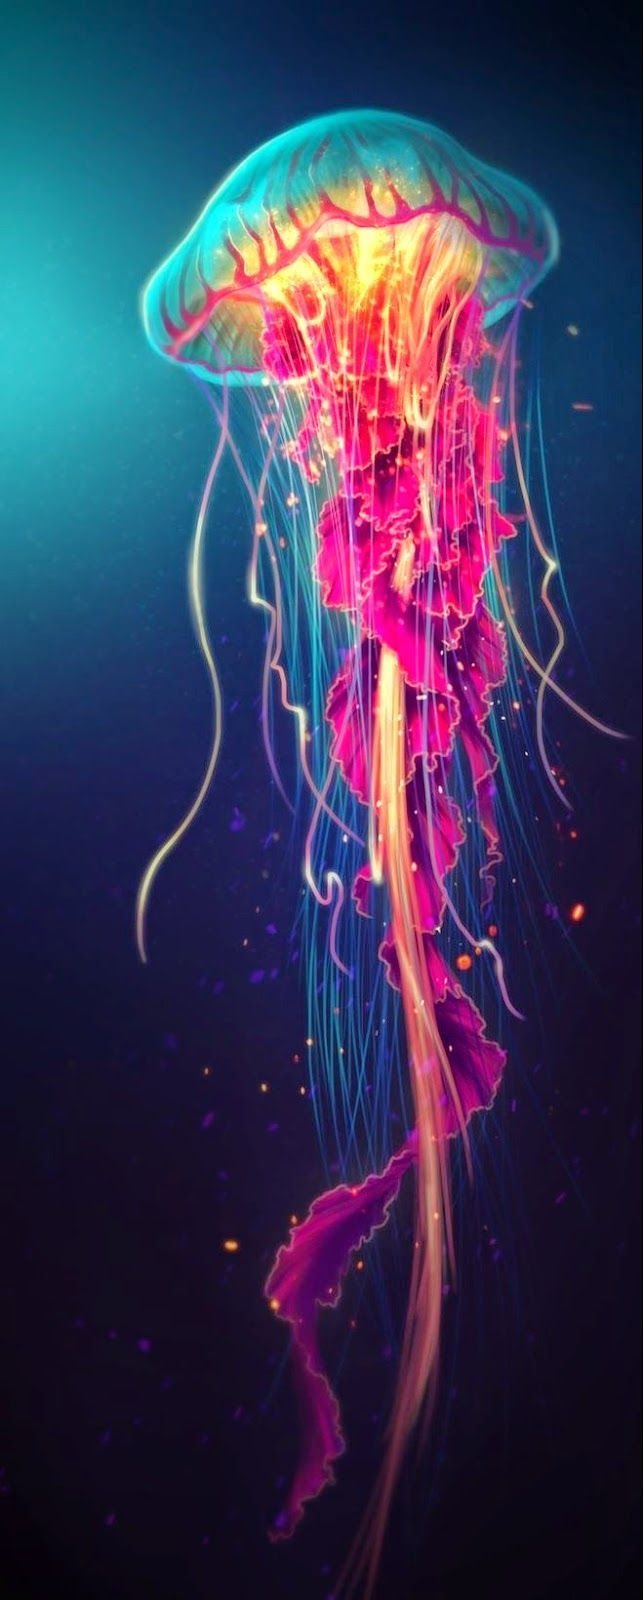 What Do Jellyfish Eat? Jelly fish are beautiful creatures. There is 90% of water in their bodies but still they flow along with the flow of water. These creatures eat meat and mate constantly. Jelly fish have certain things which they have in common with other animals.